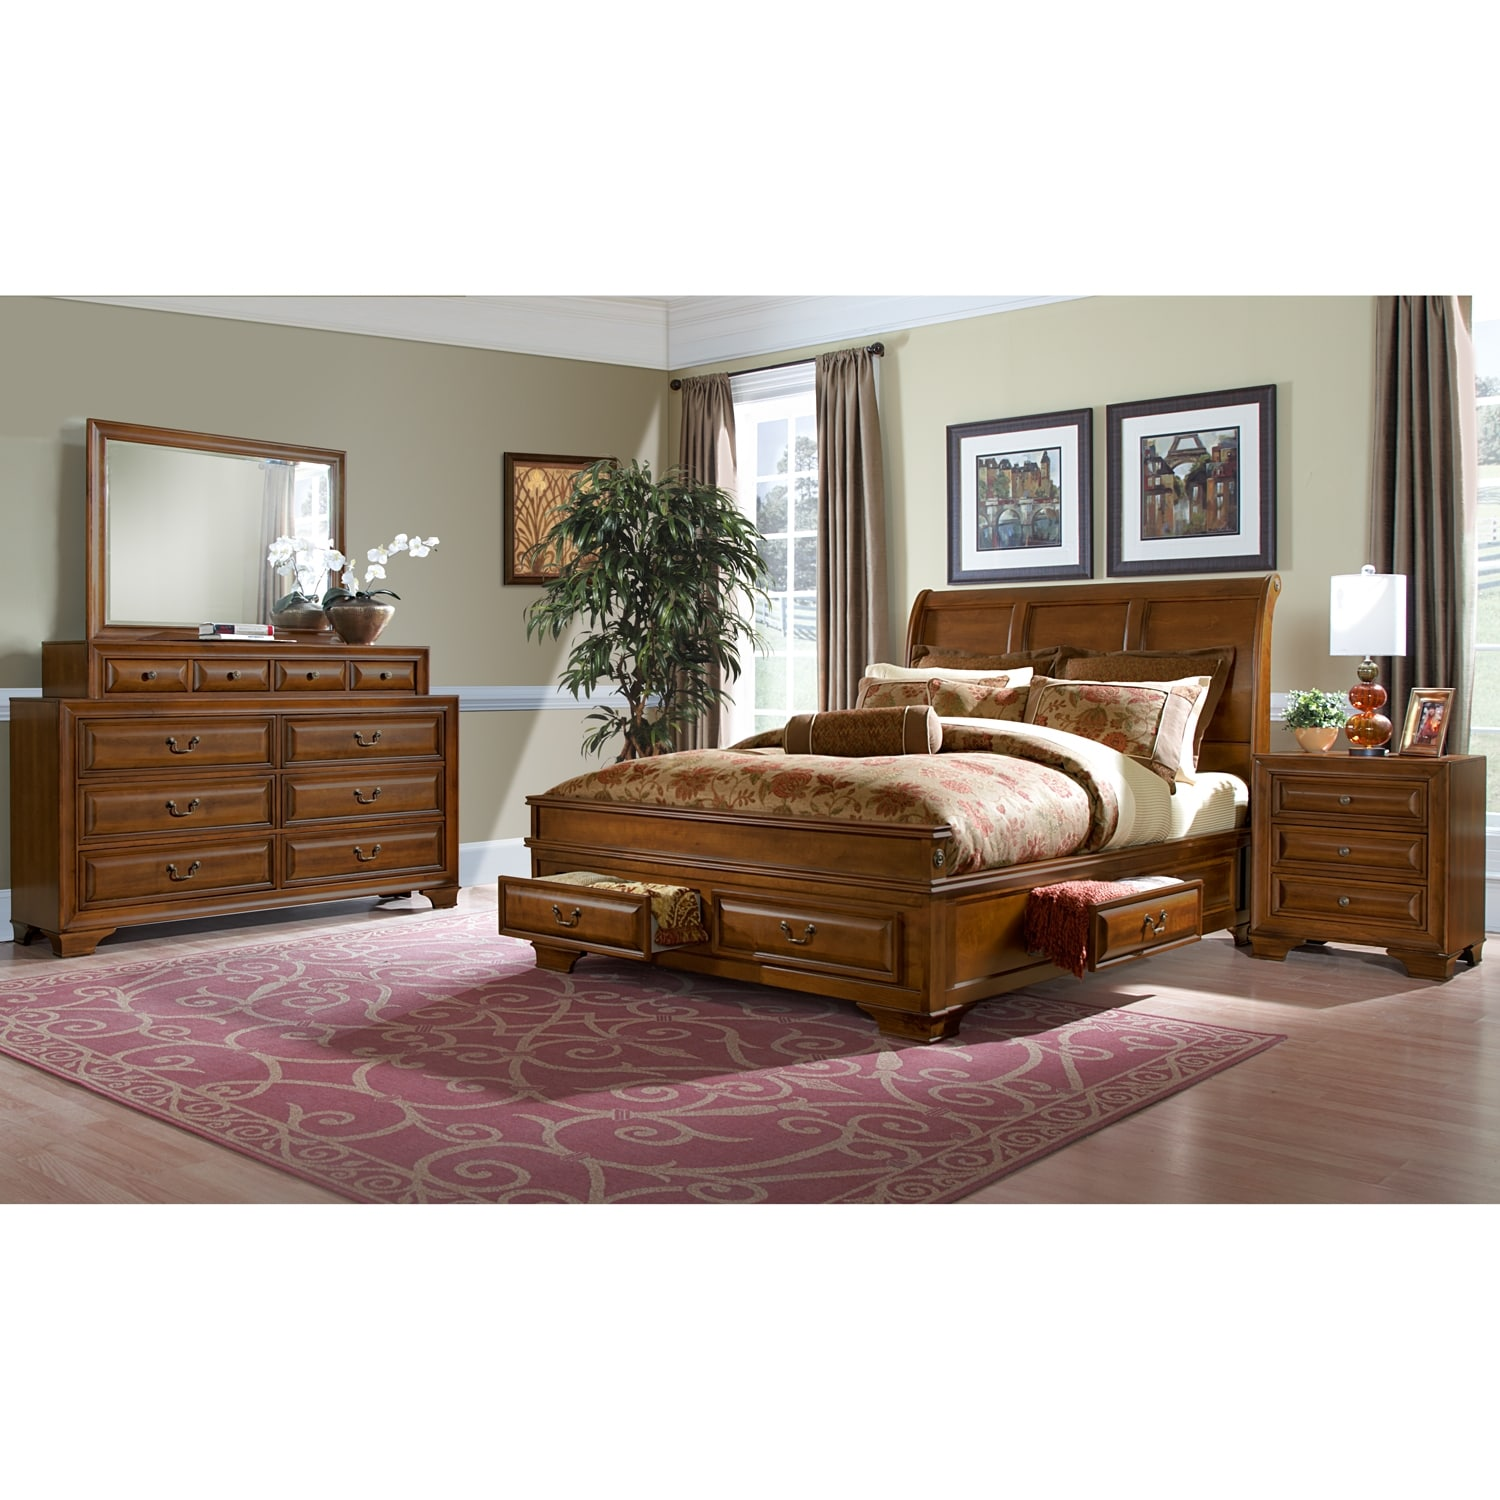 Shop bedroom packages american signature furniture American home furniture bedroom sets